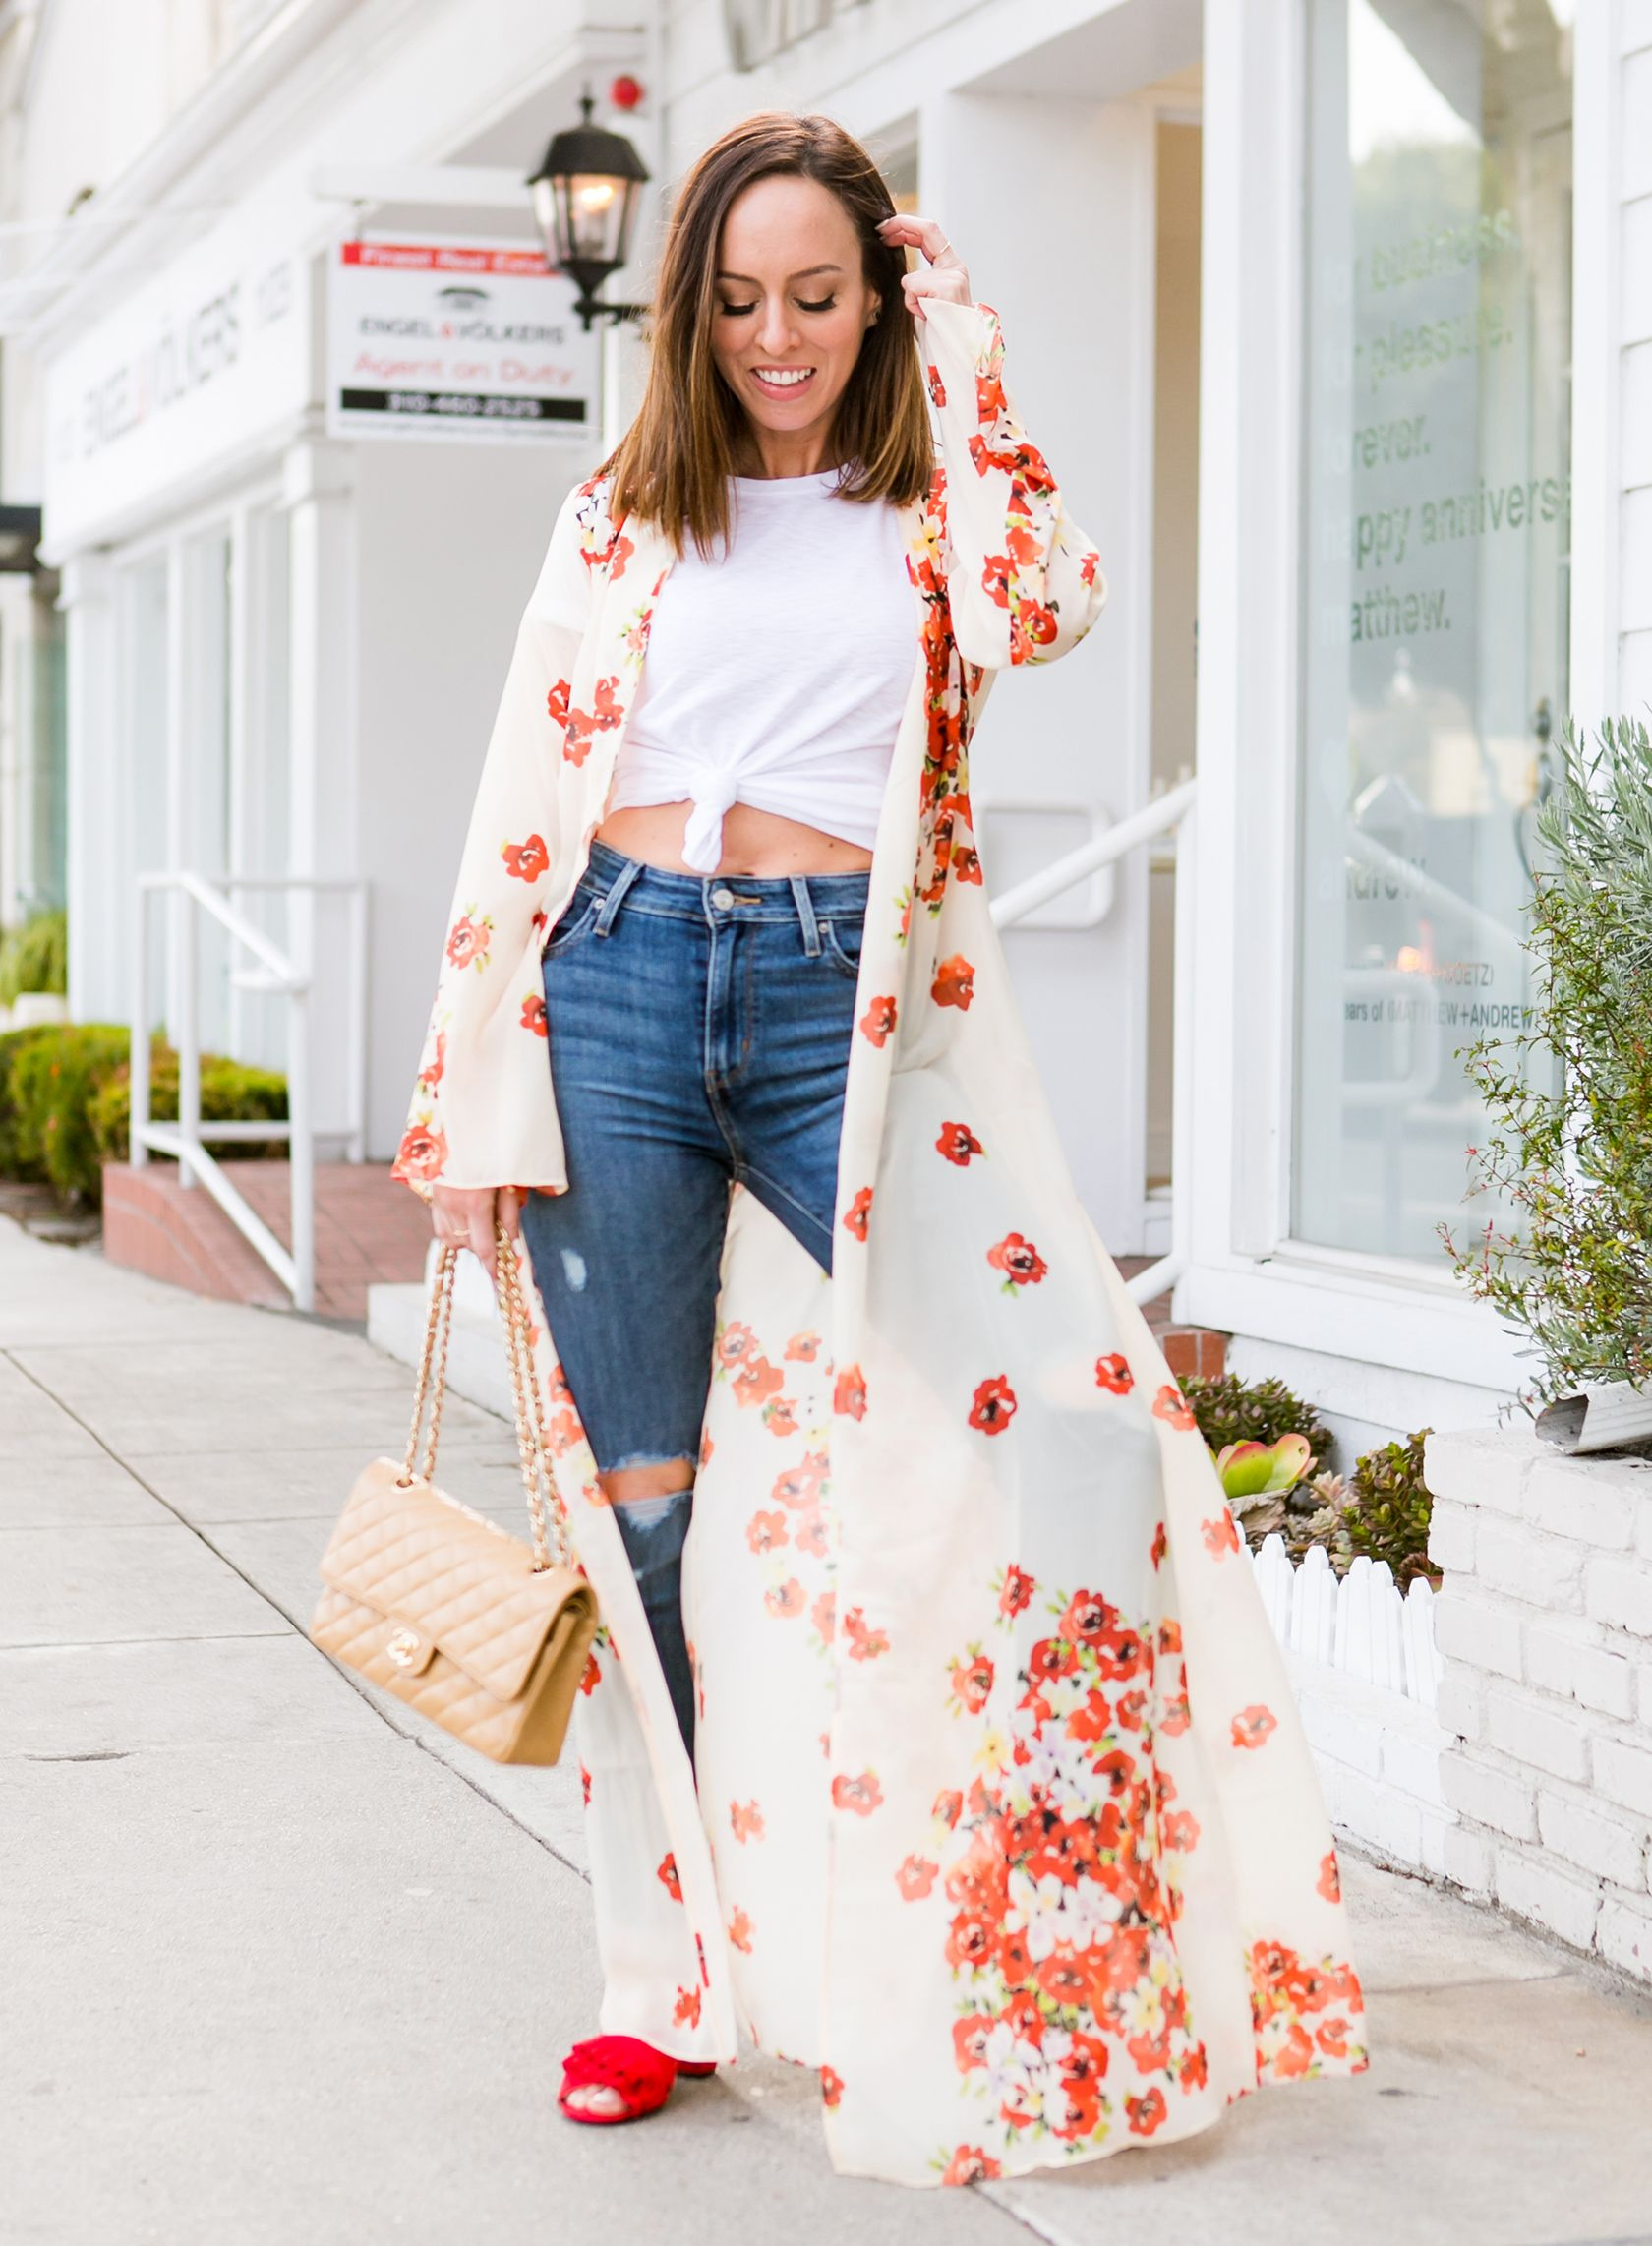 67497a9e3d Sydne Style shows how to wear a kimono with skinny jeans and a tshirt # kimonos #florals #jeans #chanel #tees